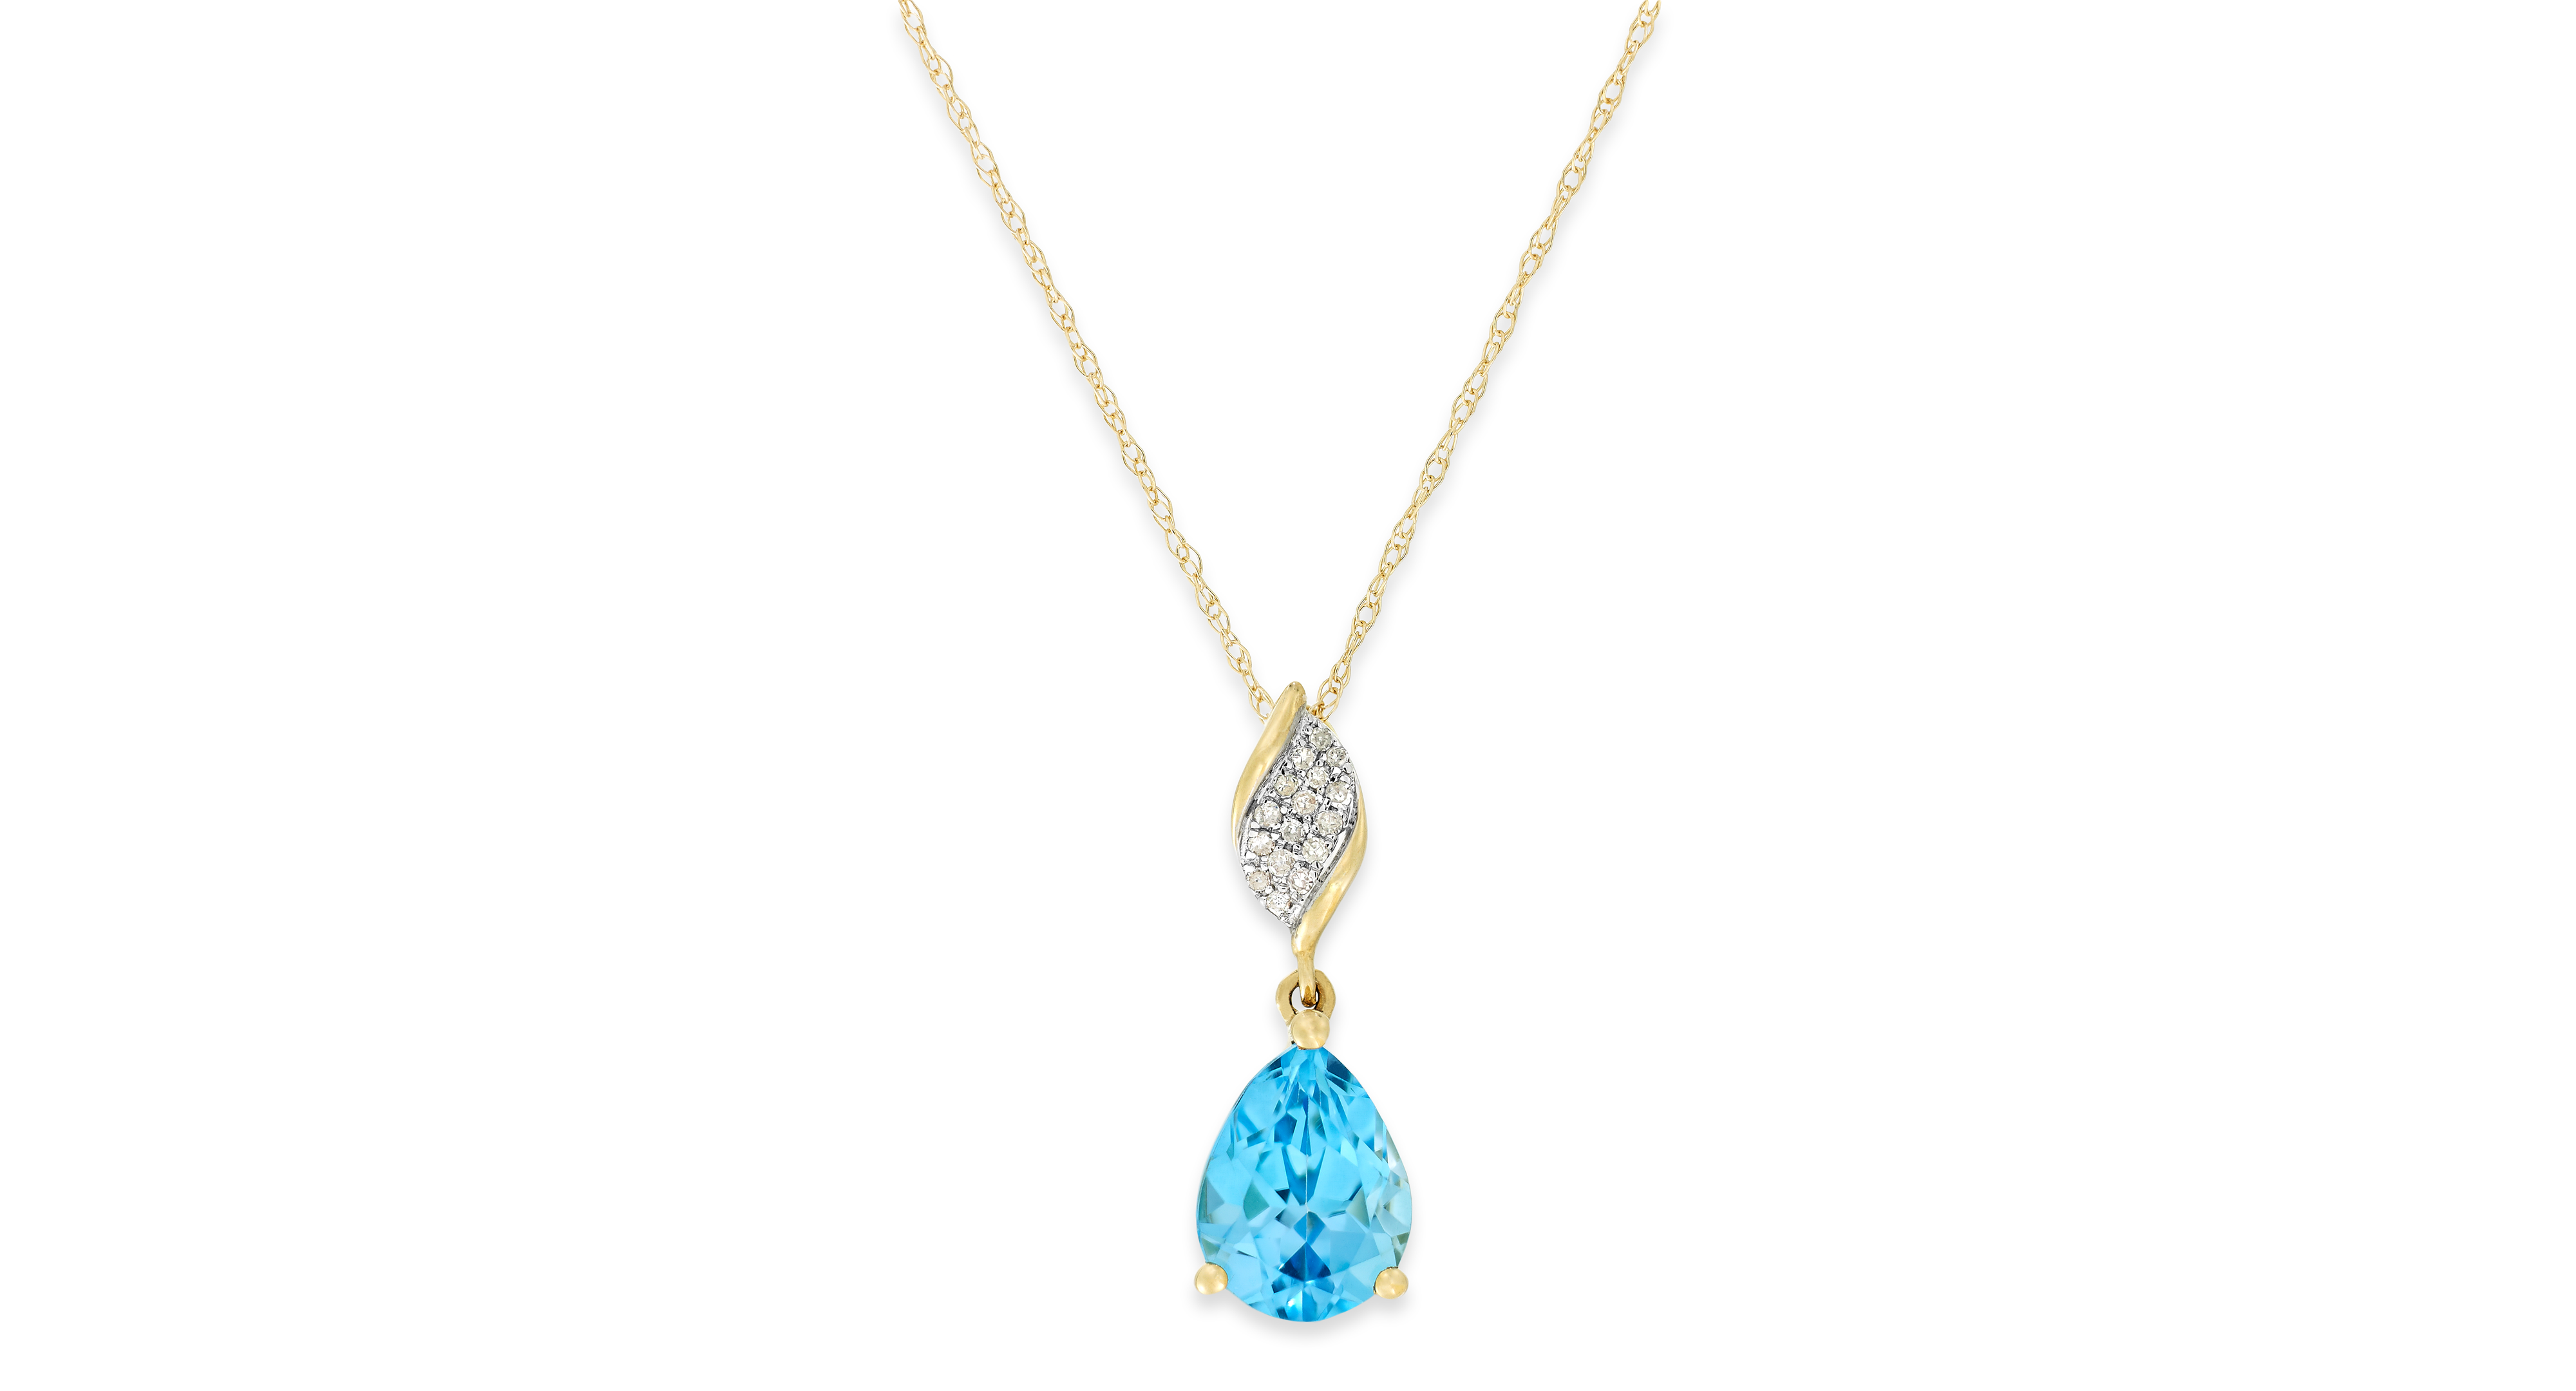 Blue topaz ct tw and diamond accent pendant necklace in